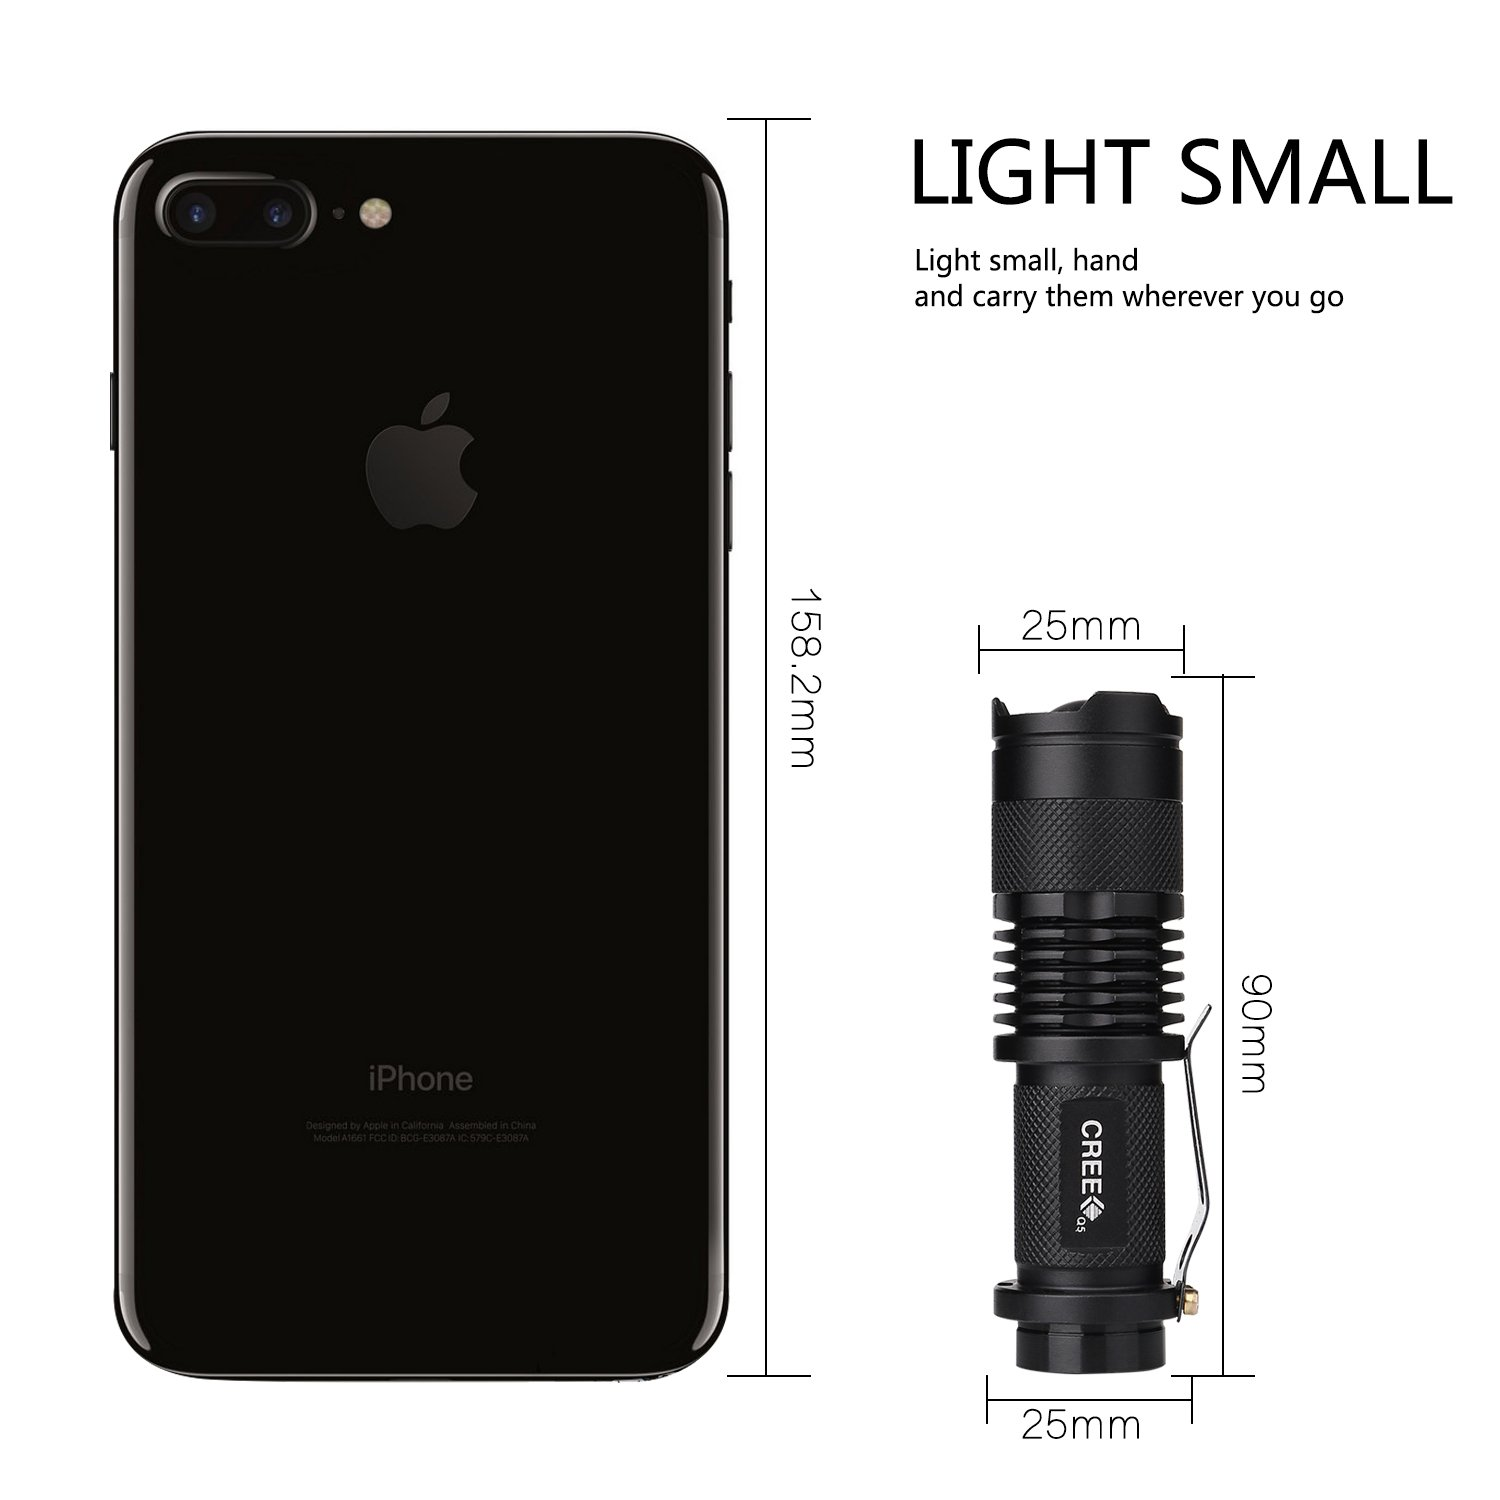 GSPON LED Flashlight,Outlite High Power 3 Mode Tactical Flashlight Handheld Waterproof Flashlight for Outdoor by GSPON (Image #6)